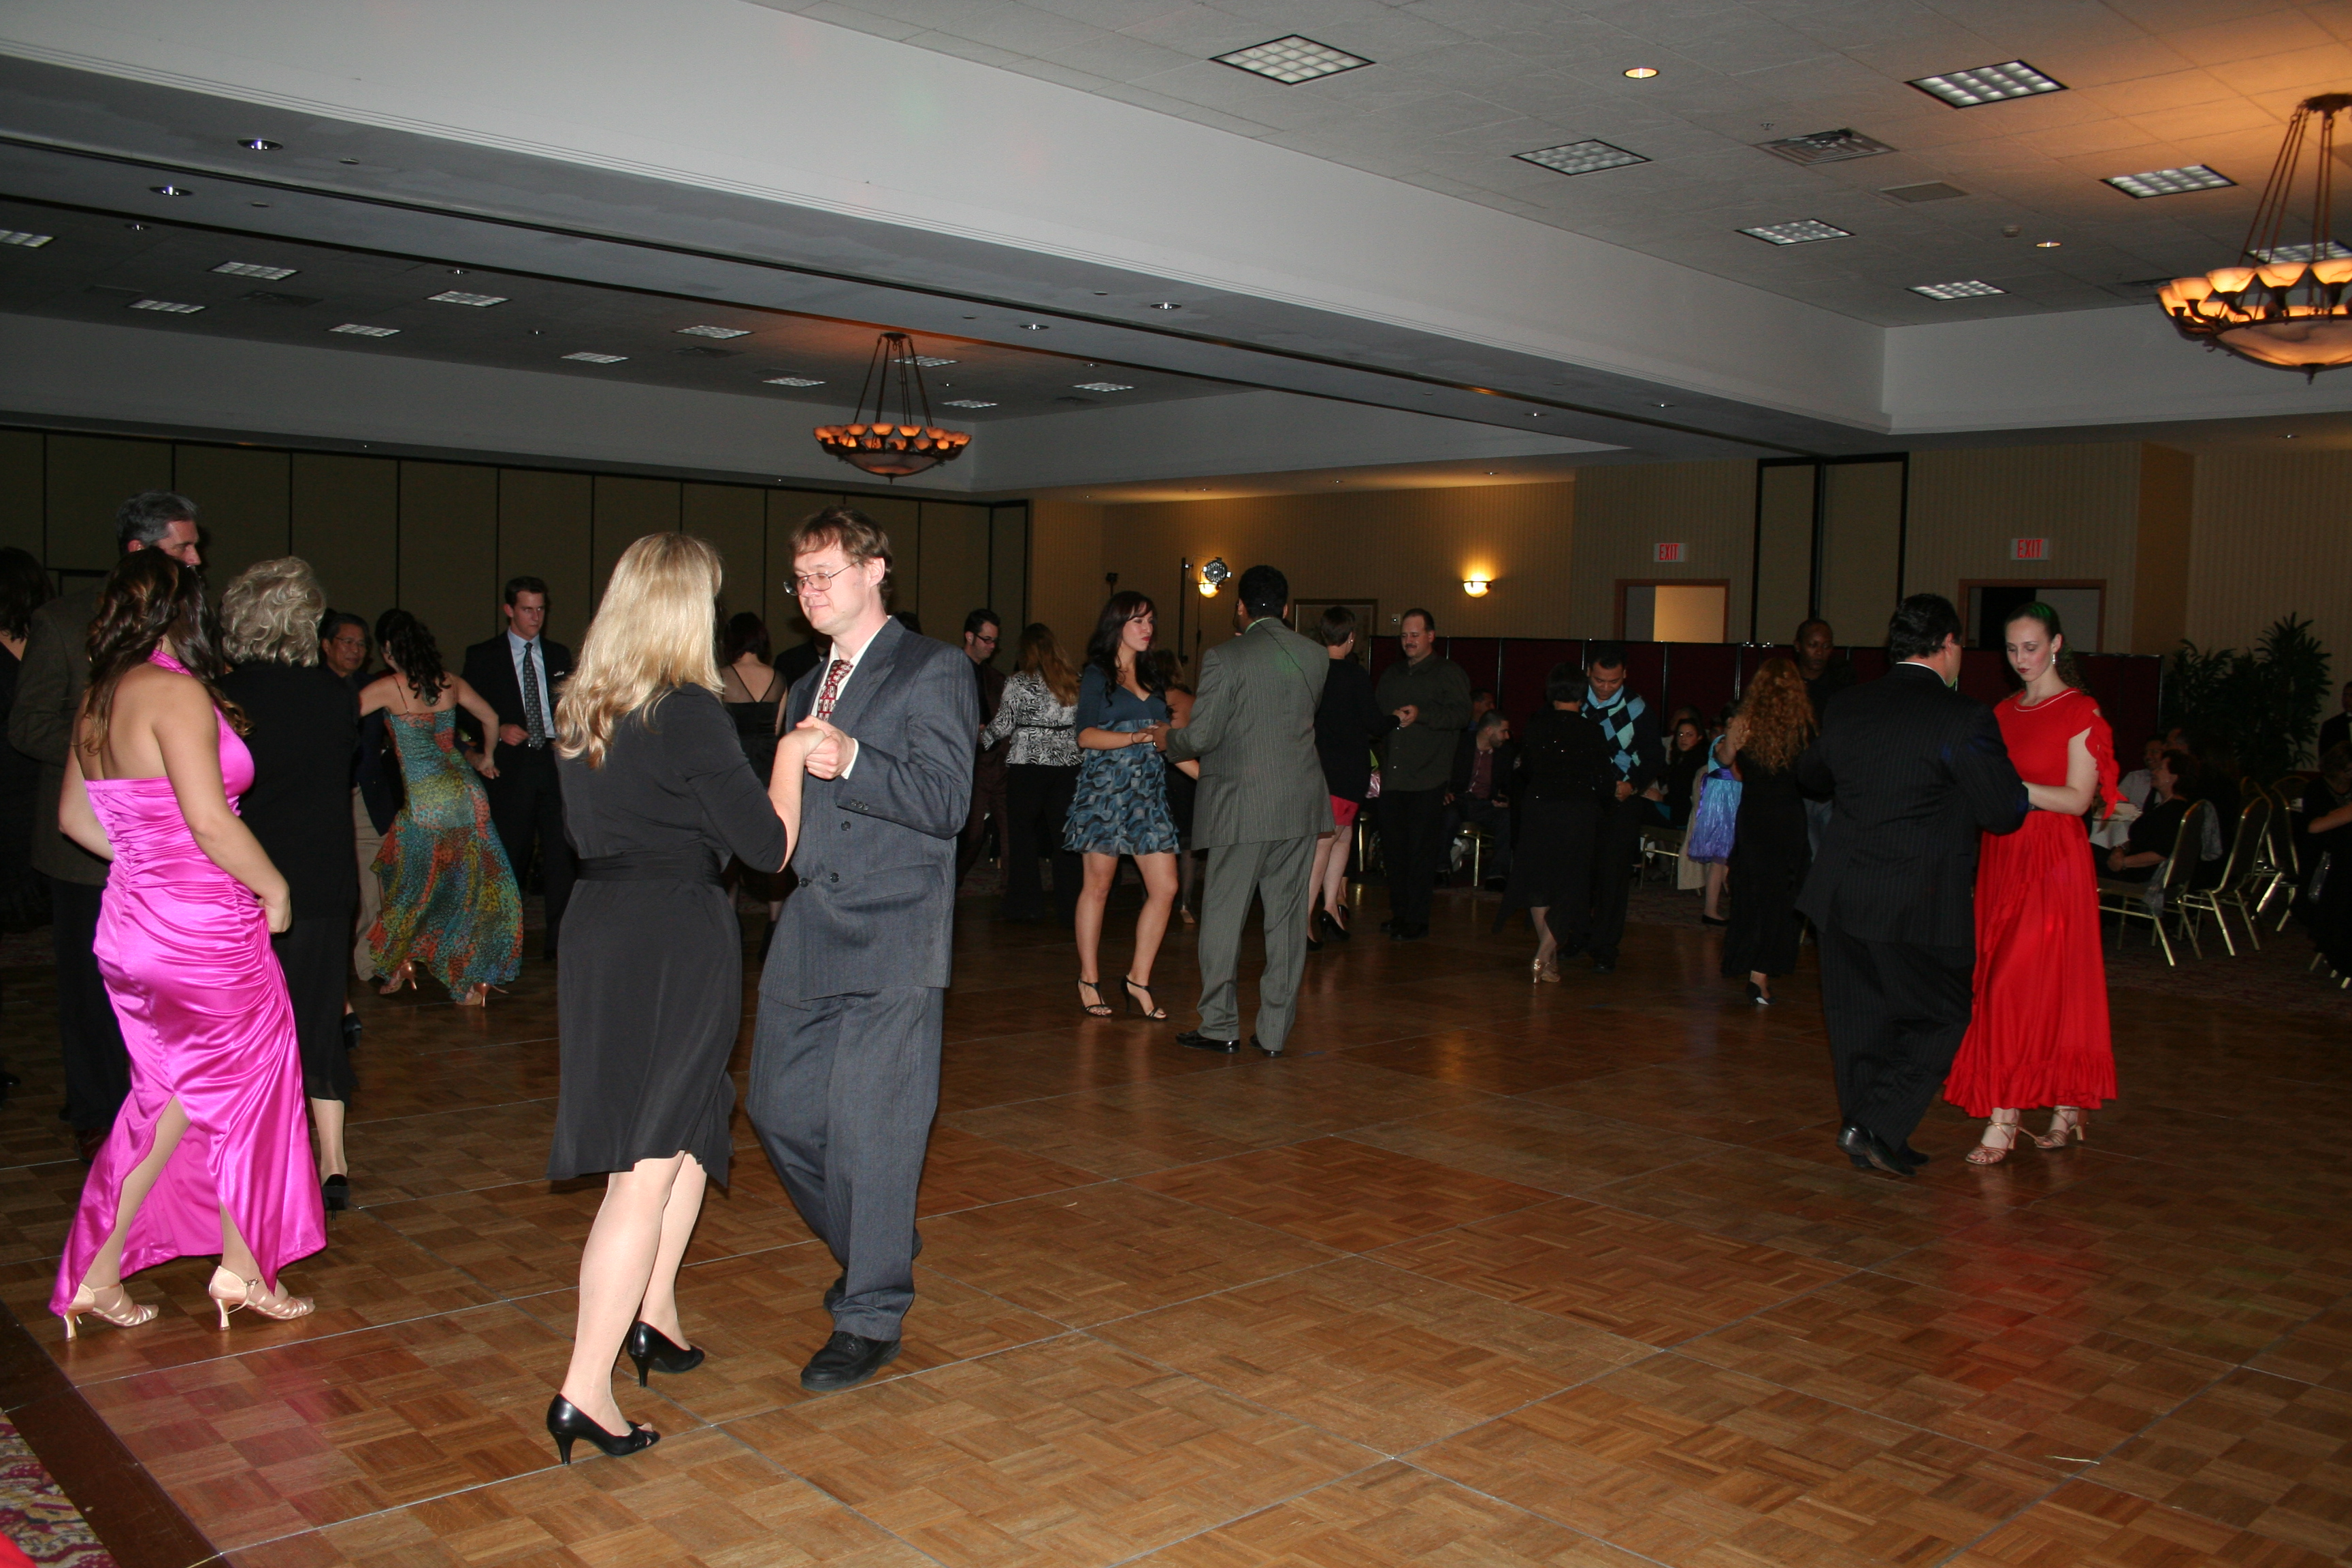 Salsa dance lessons in orange county